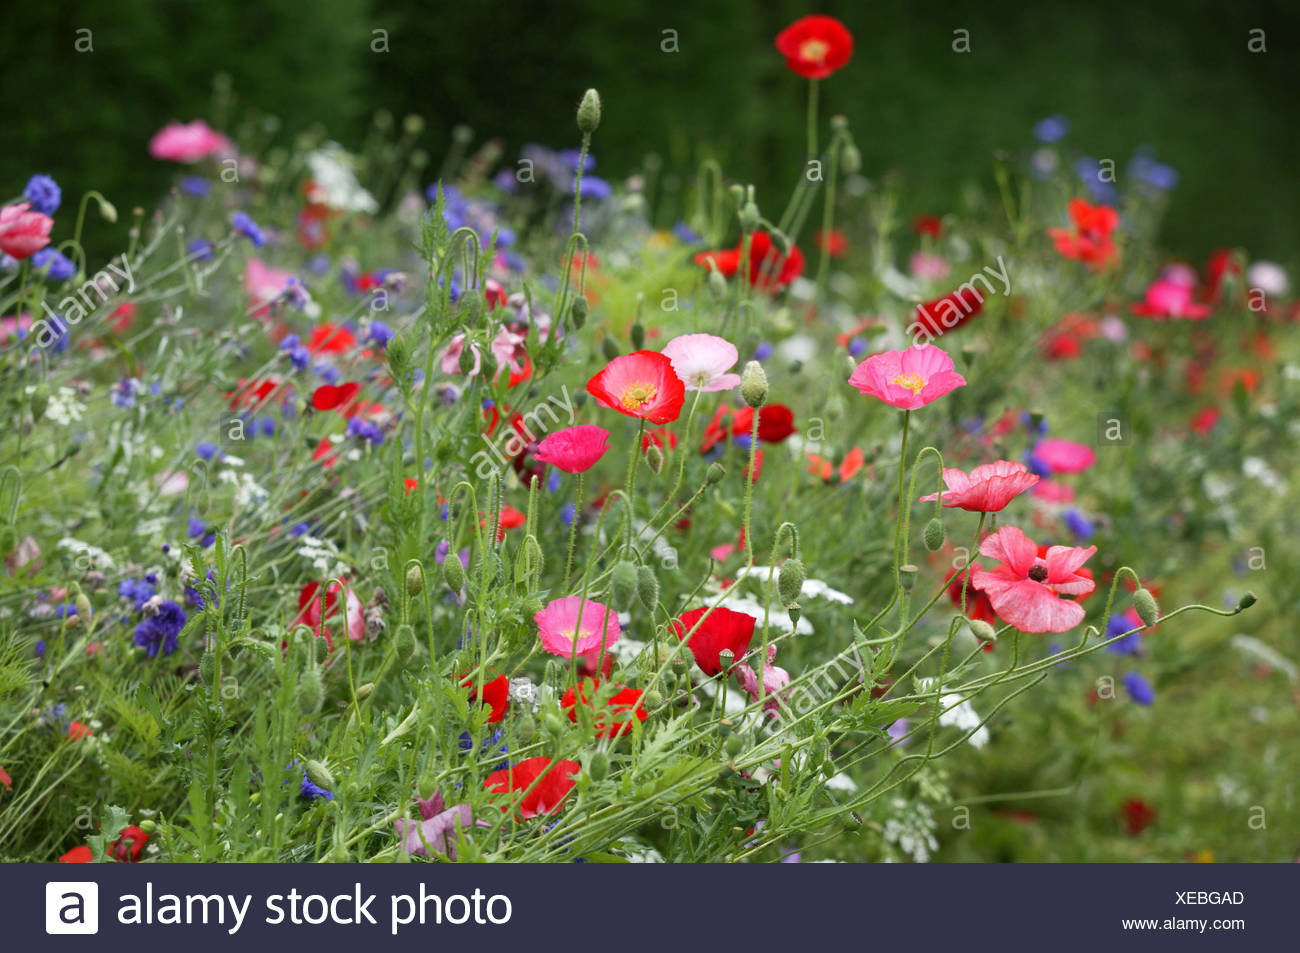 Summer flowering annuals pink and red poppies with blue cornflowers summer flowering annuals pink and red poppies with blue cornflowers izmirmasajfo